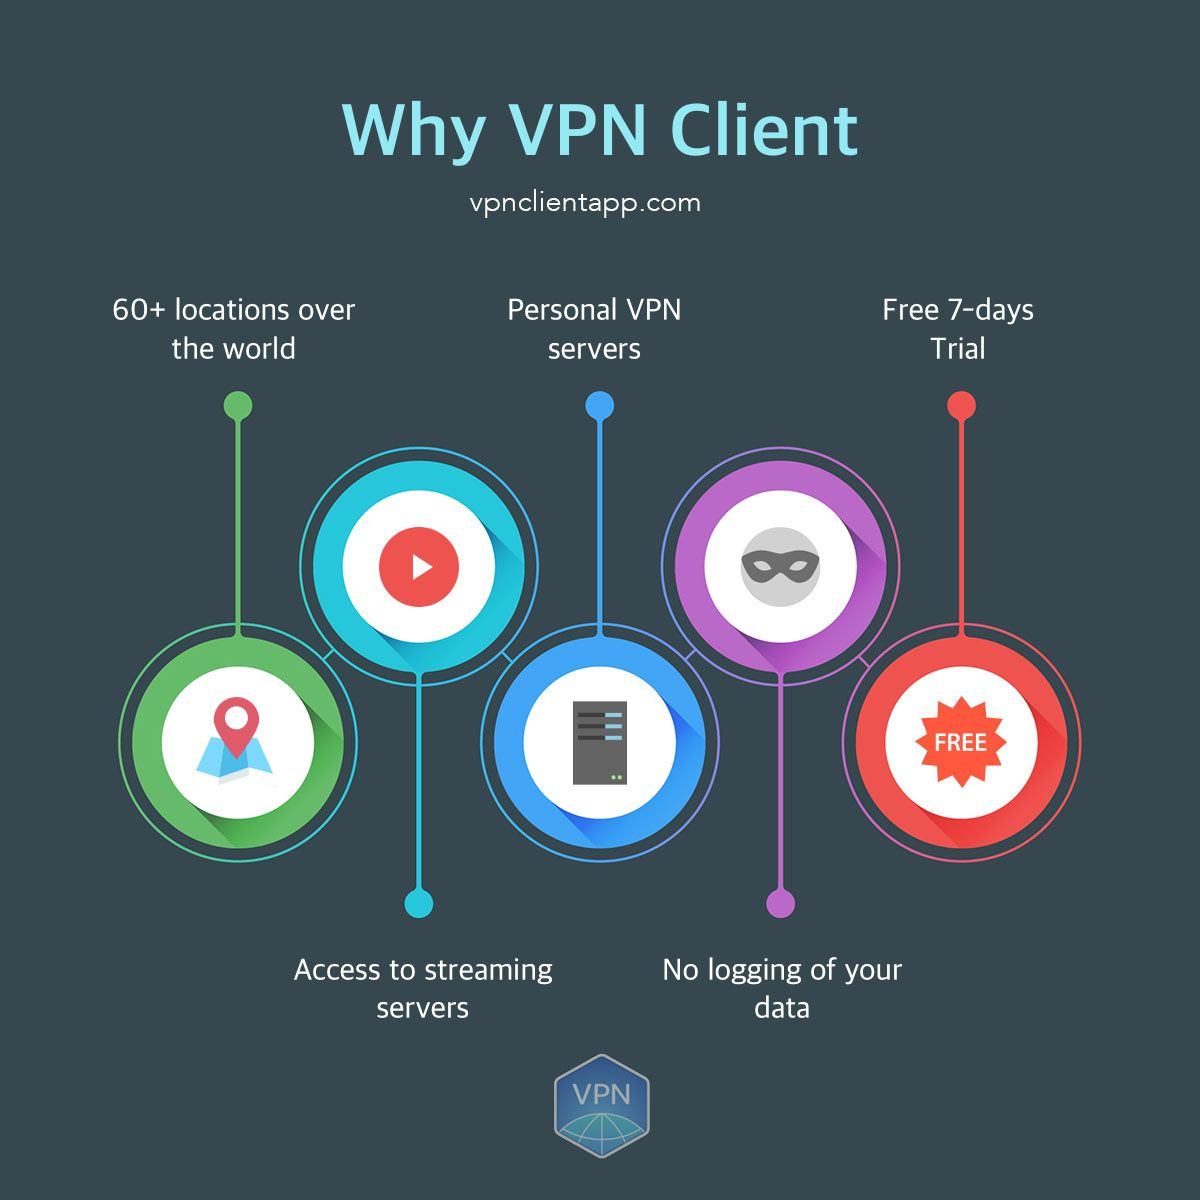 039d0b9151a34049f7cf495ca31c3740 - What Are The Benefits Of Having A Vpn